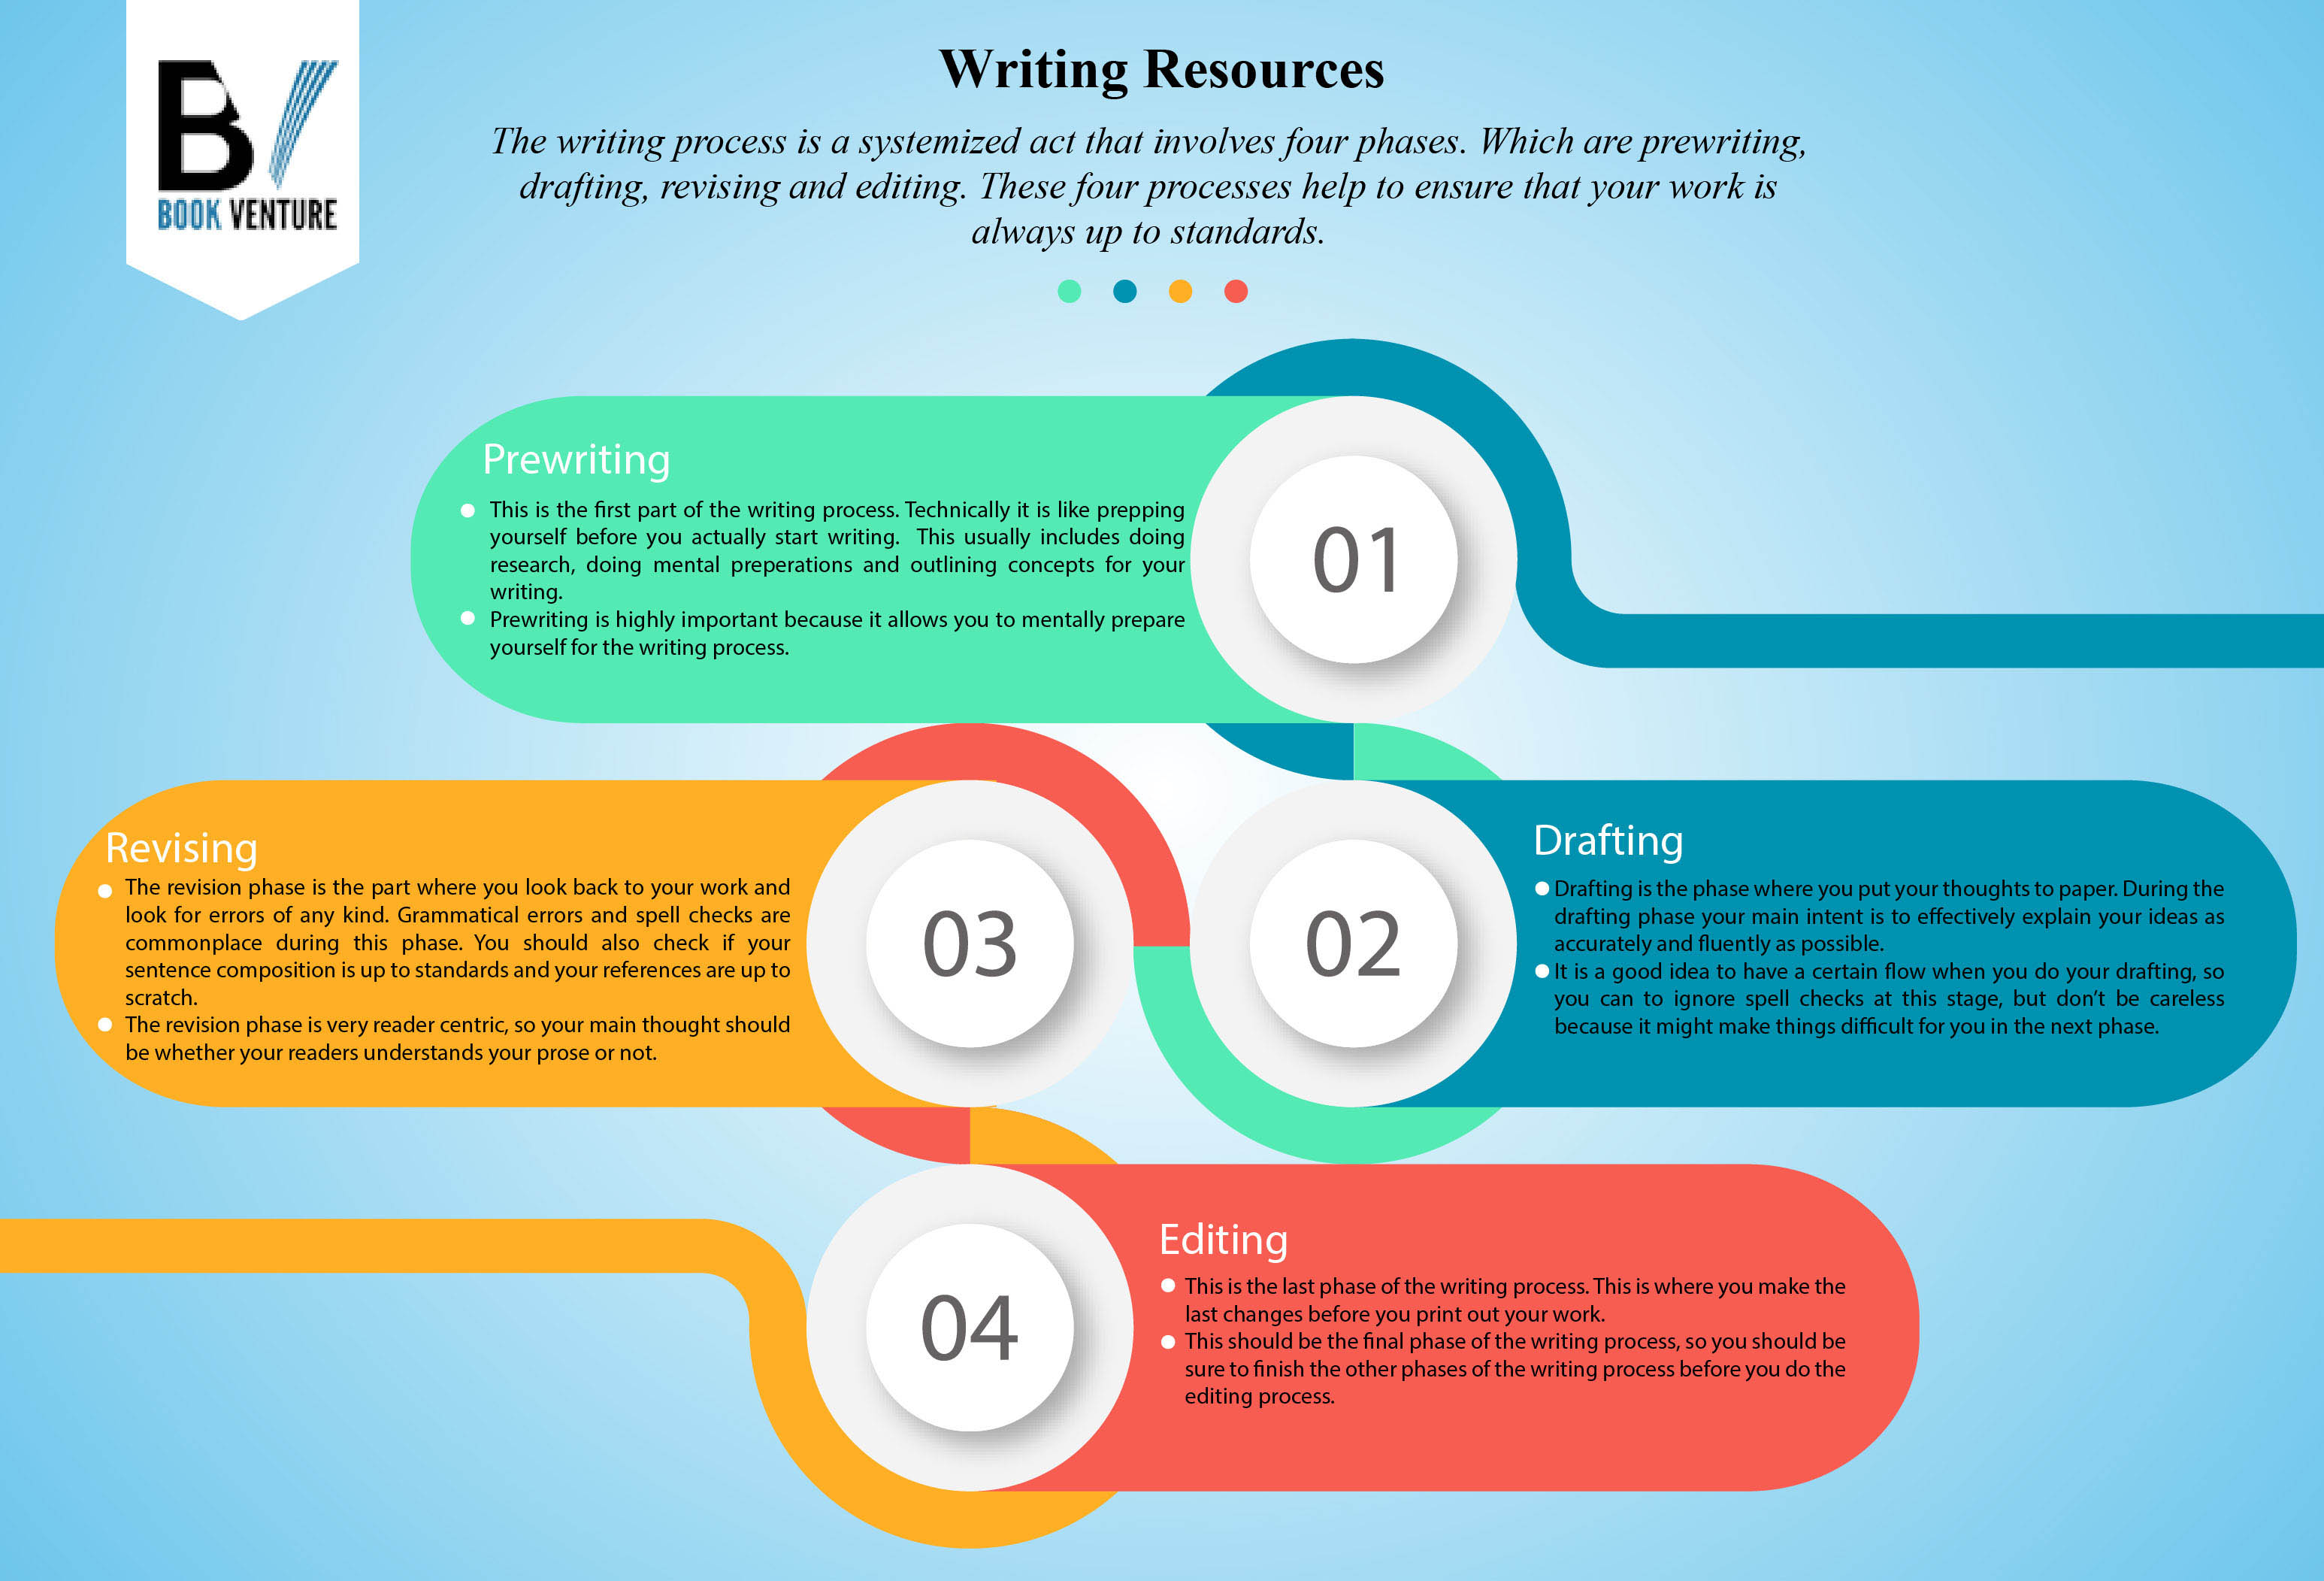 process essay esl flow The 5 step essay writing process has 5 ratings and 1 review the practical 5 step essay writing processenglish essay writing skills for esl studentsacade.